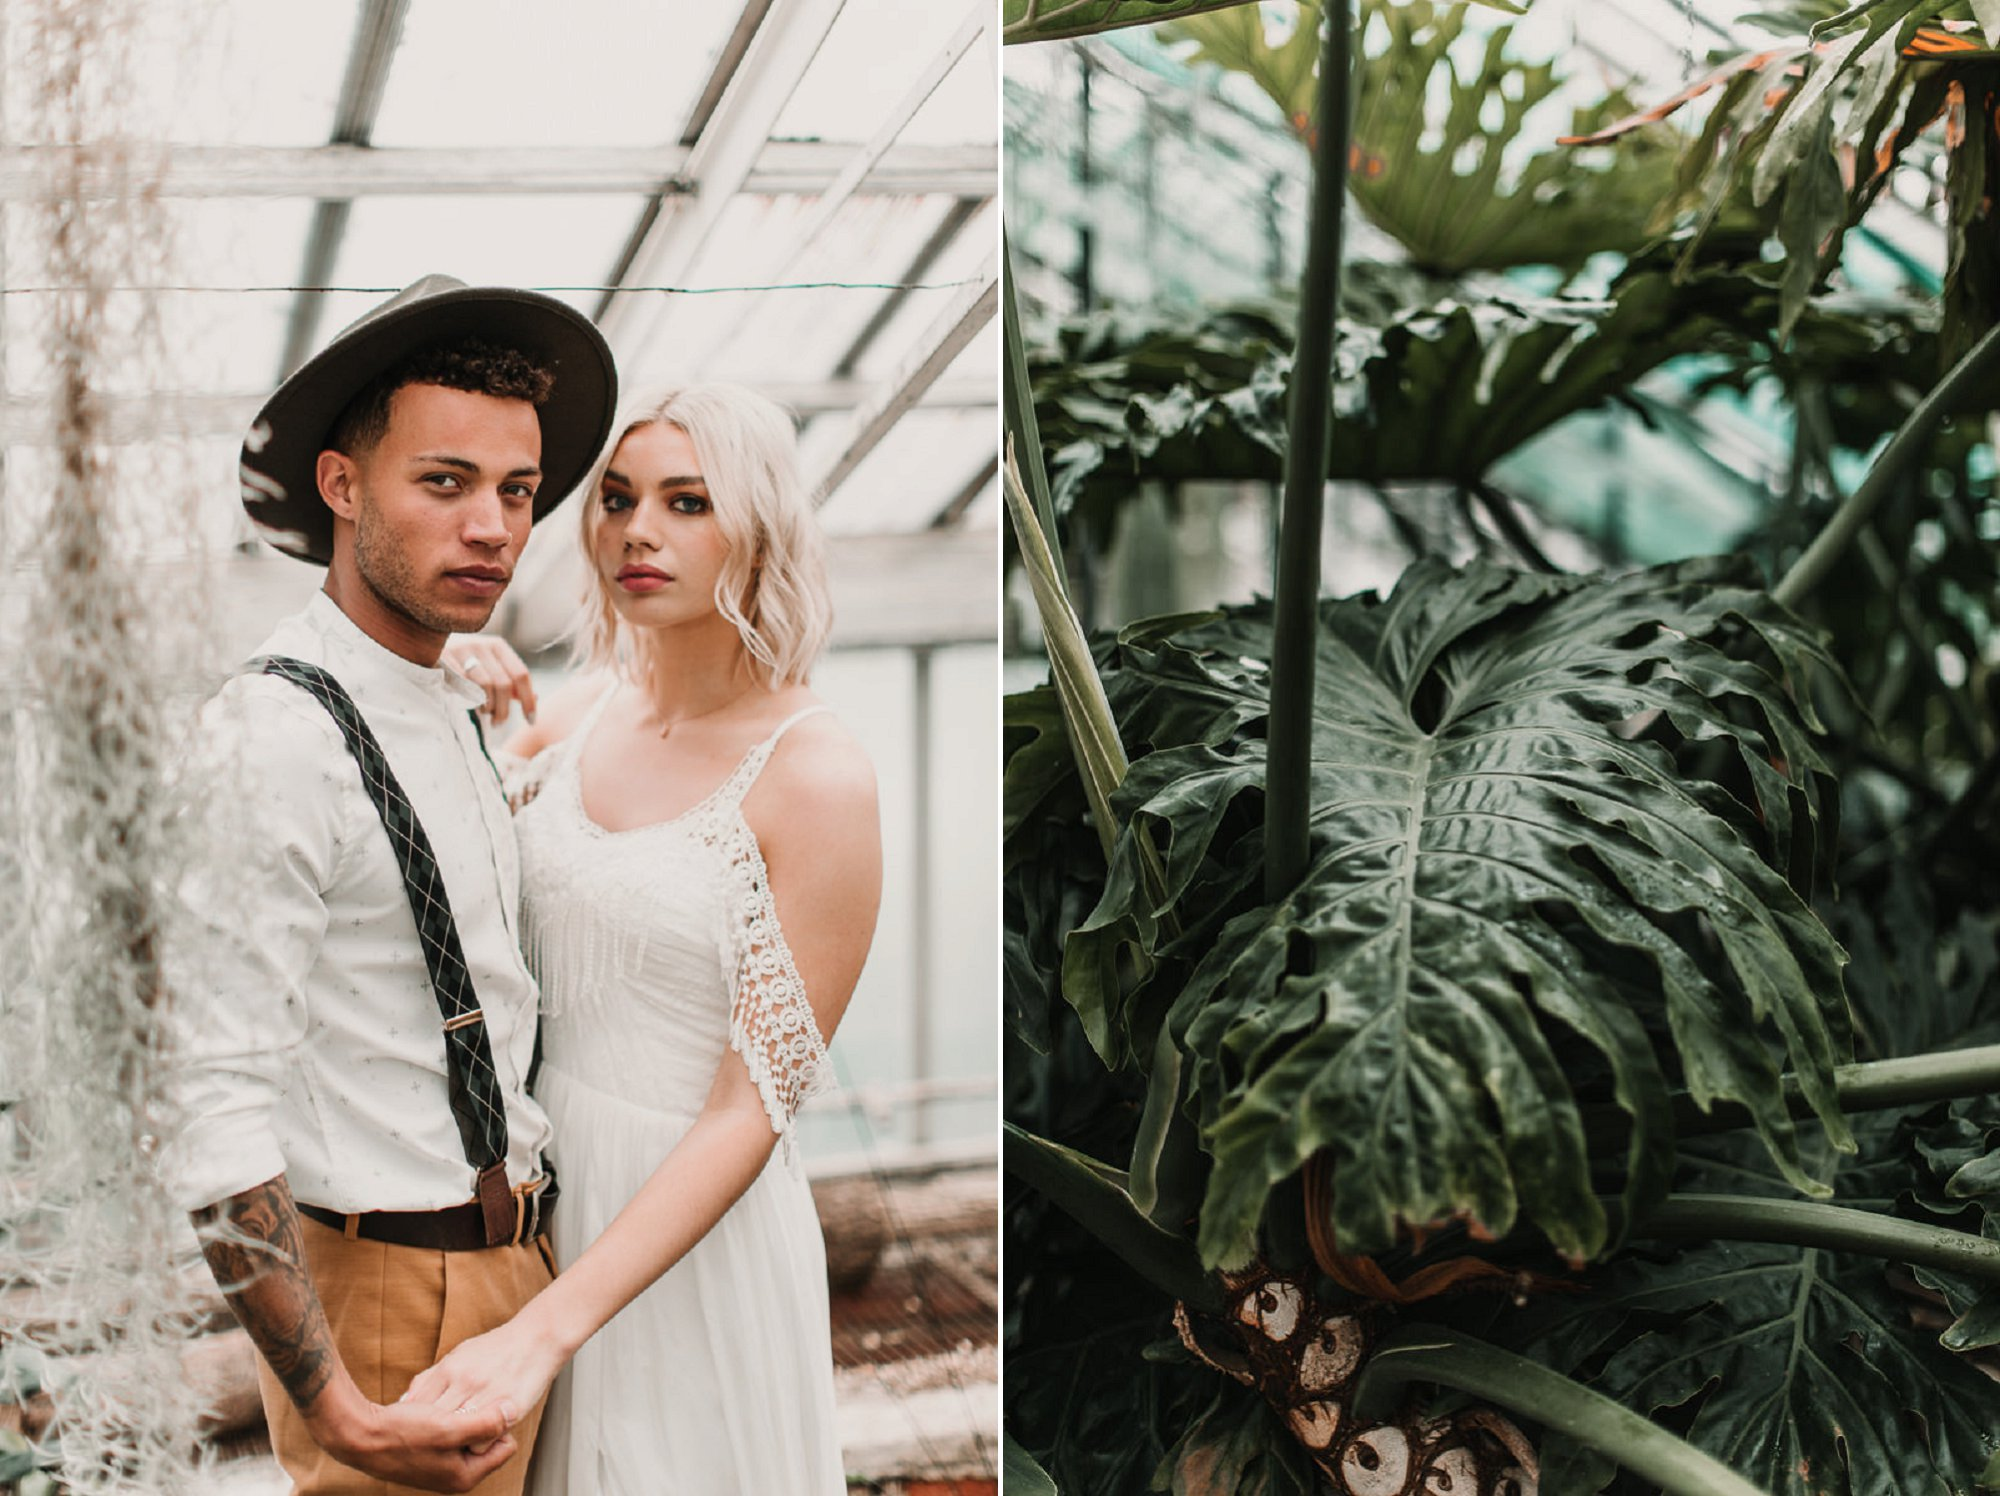 Wedding in a palm house? Yes please!! Blush and green Bohemian Wedding Inspiration bringing a little California to you where ever you are in the world. Relaxed styling and desert inspiration and vibes. Wedding ideas for boho brides who an effortlessly relaxed, bohemian wedding. Shot by Natalie Pluck Photography. See full blog post for credits and more inspiration here https://www.nataliepluck.com/bohemian-wedding-inspiration/ 